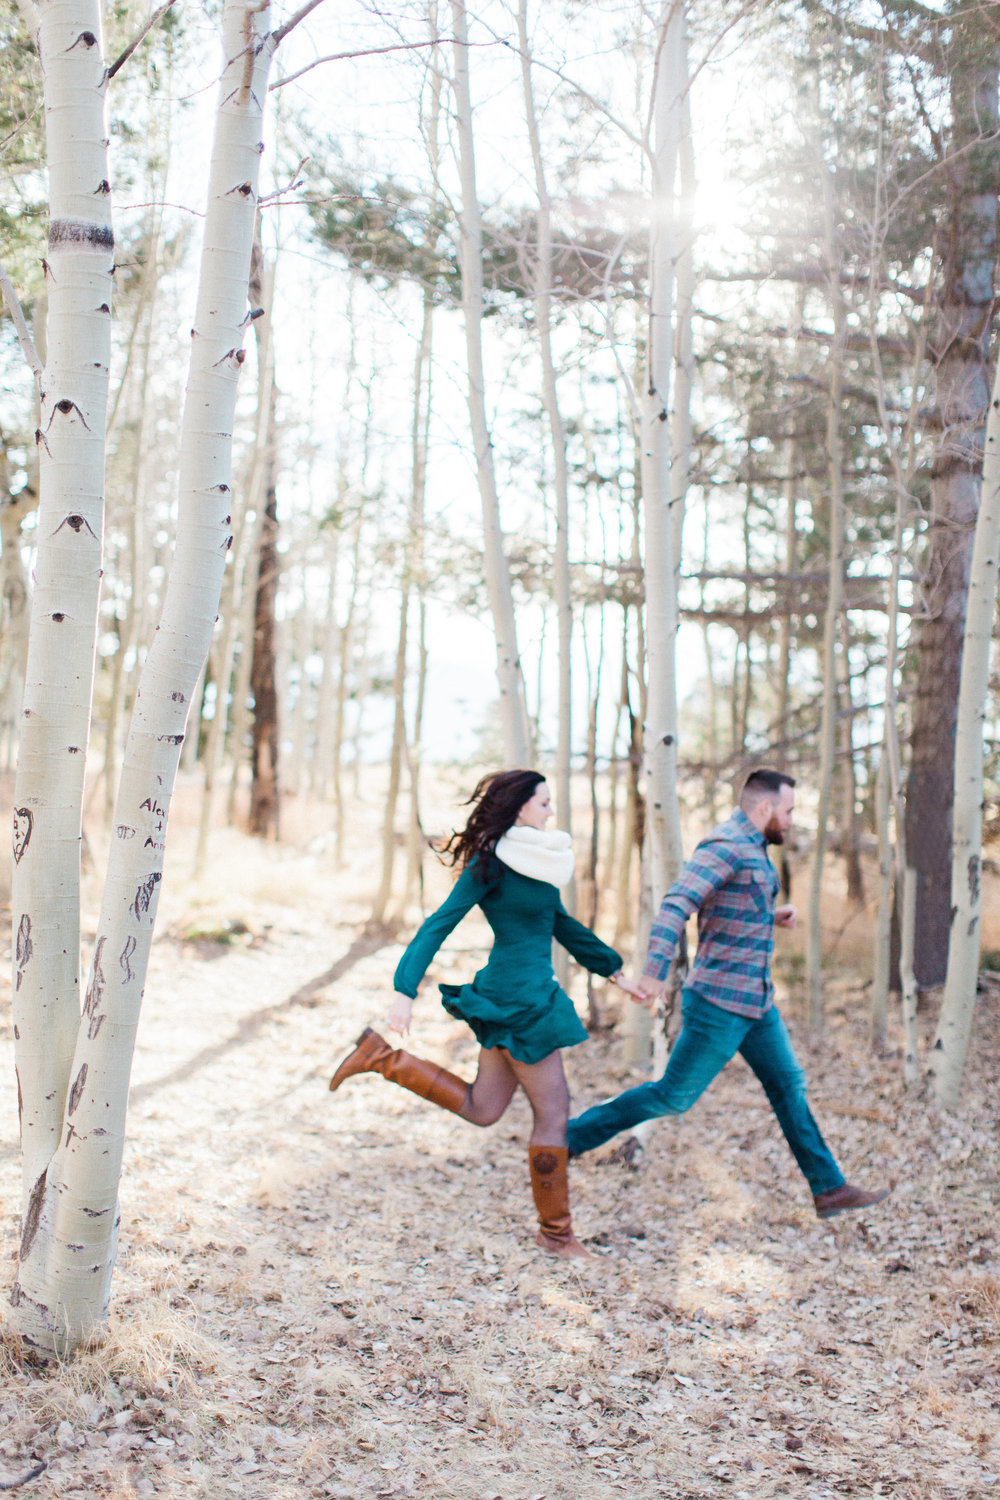 flagstaff winter forest snow bowl engagement session